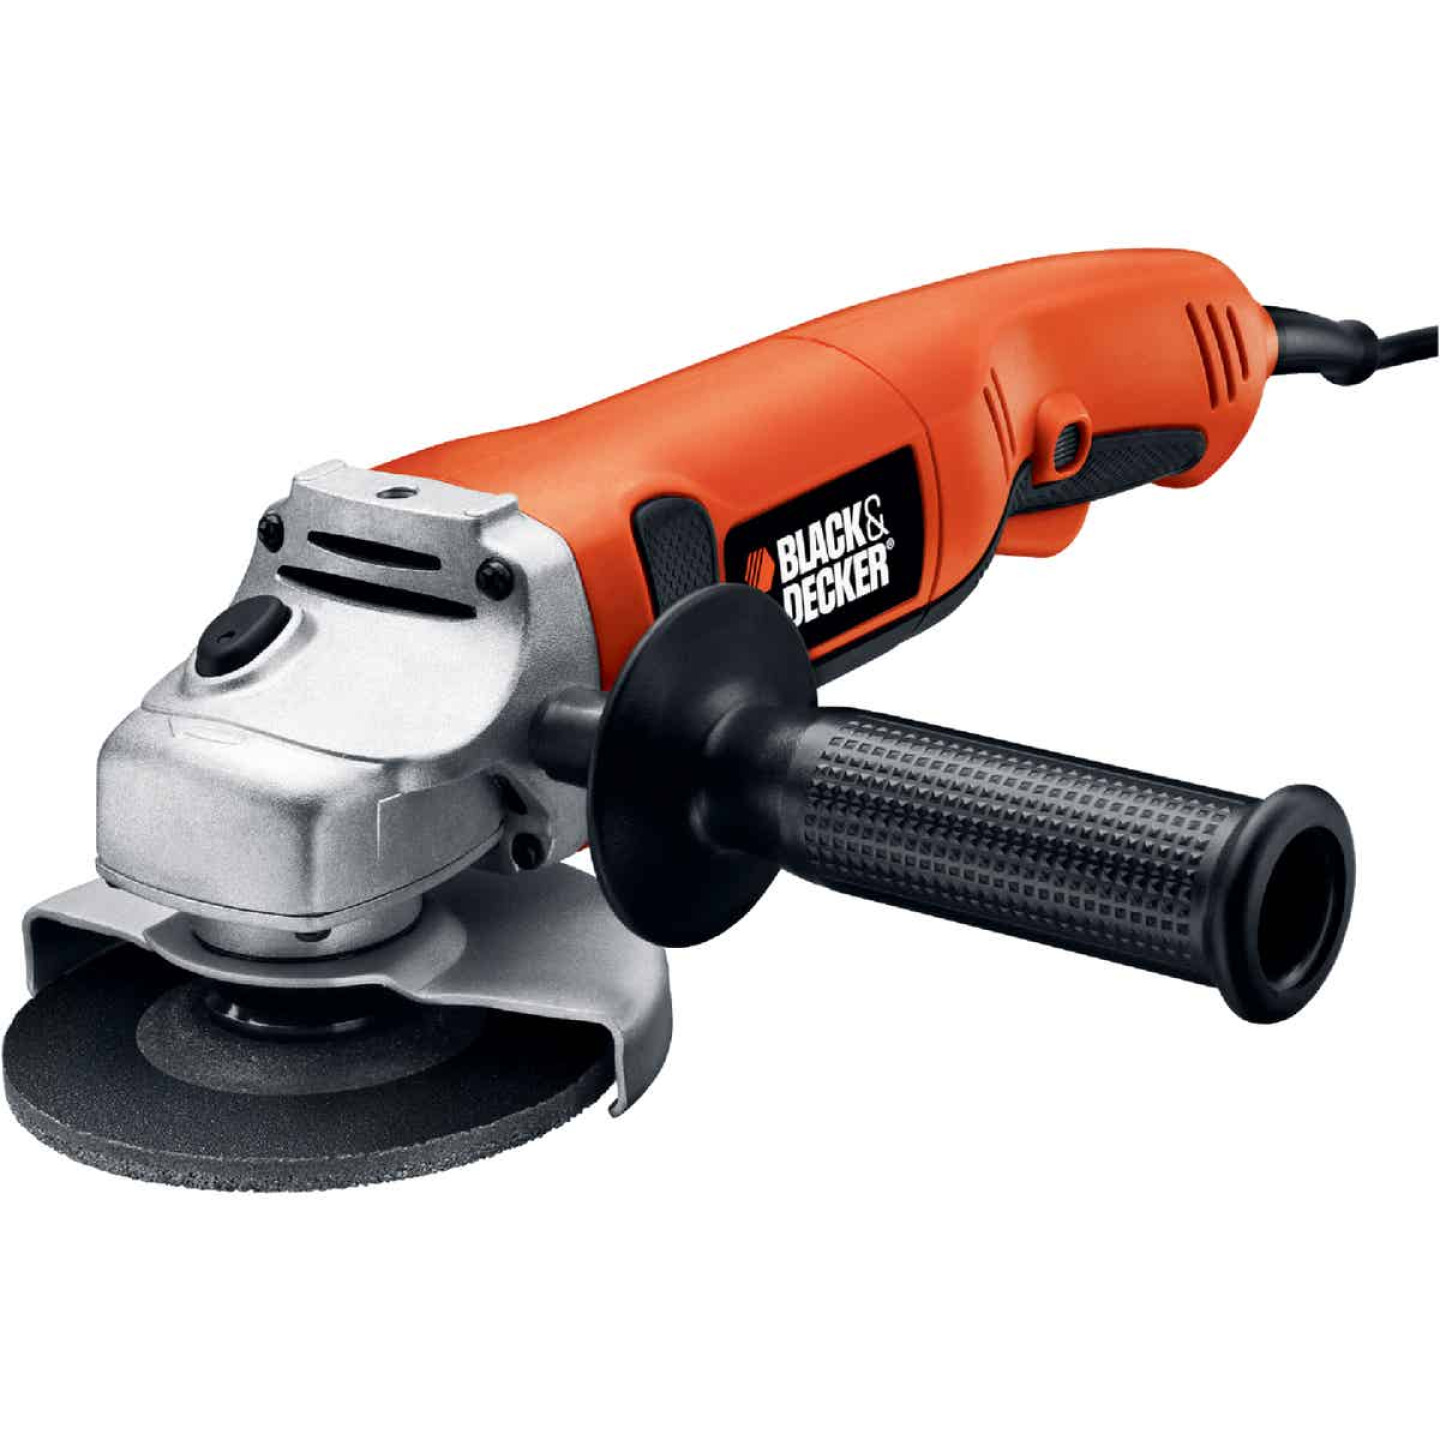 Black & Decker 4-1/2 In. 8.5-Amp Angle Grinder Image 1